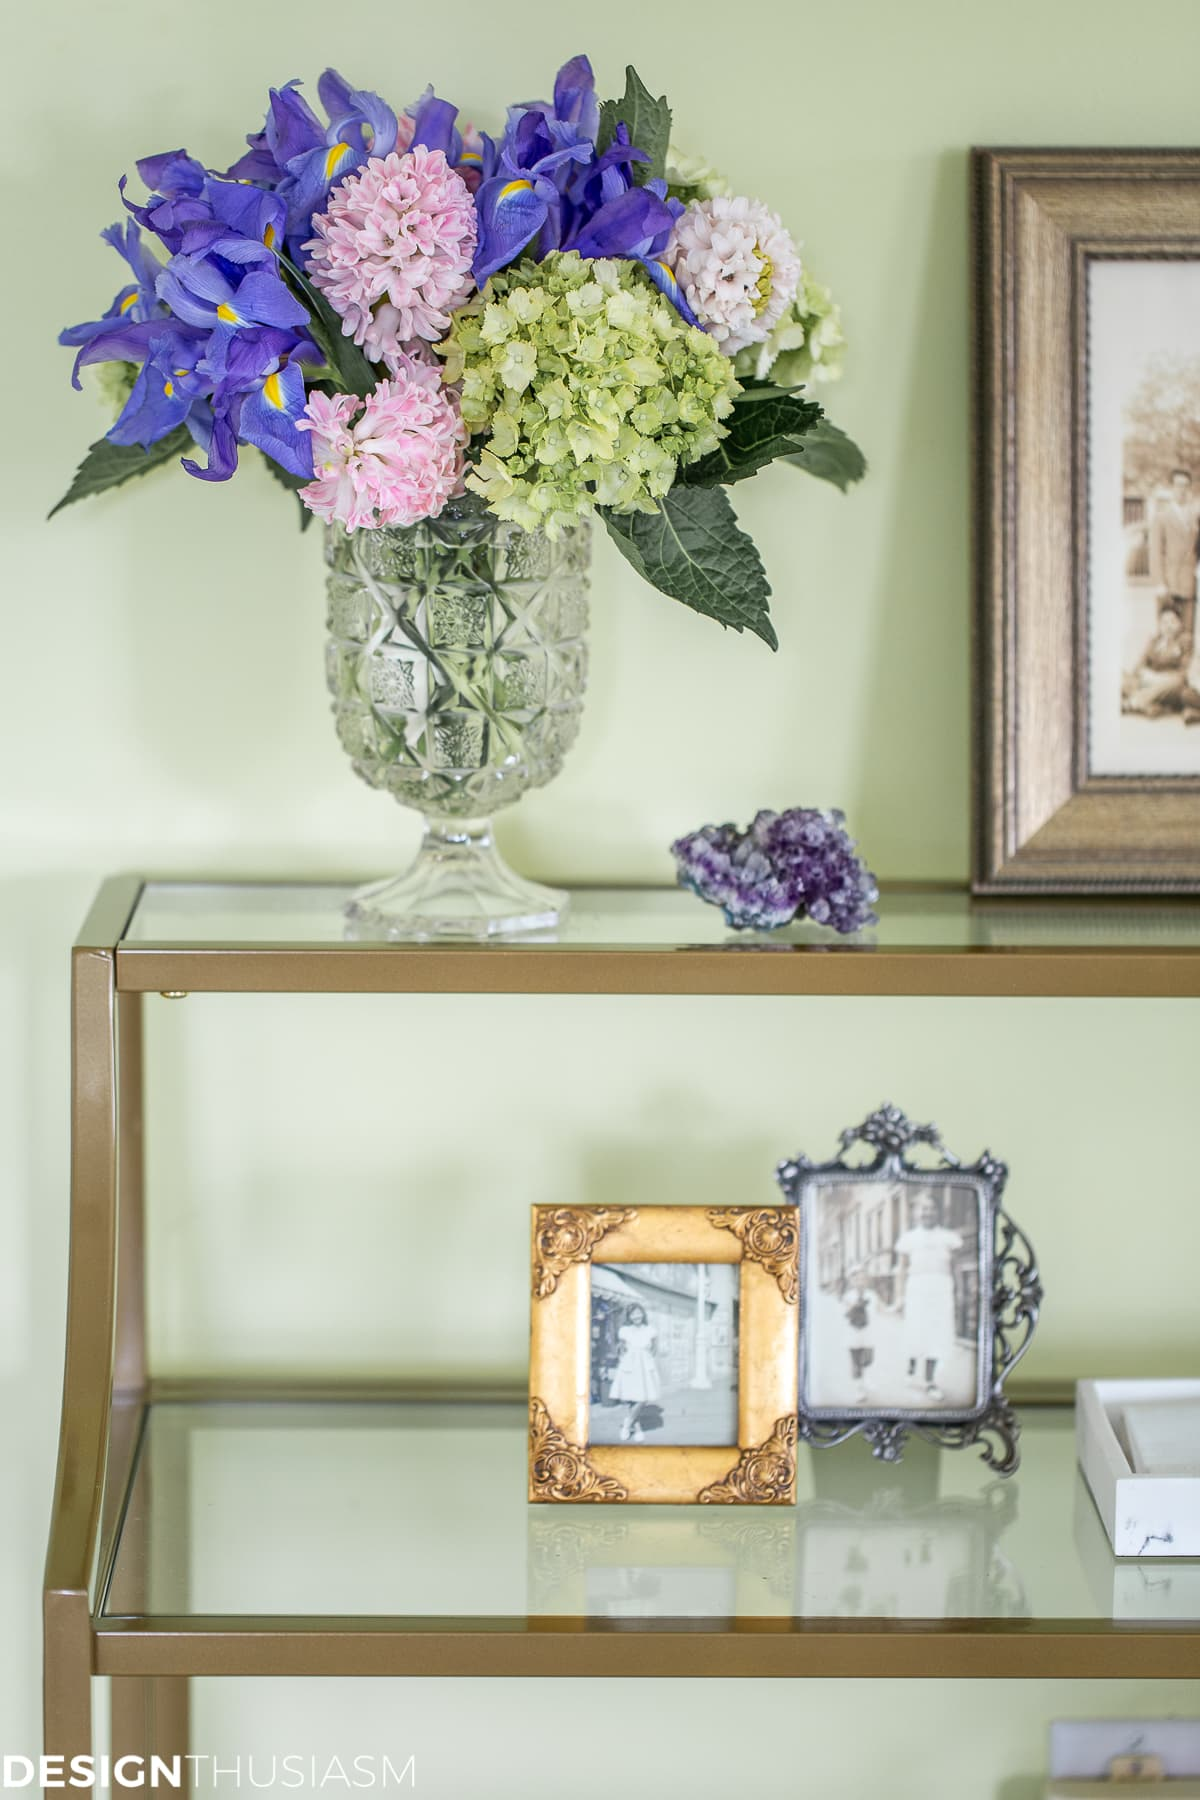 floral on bedroom shelves